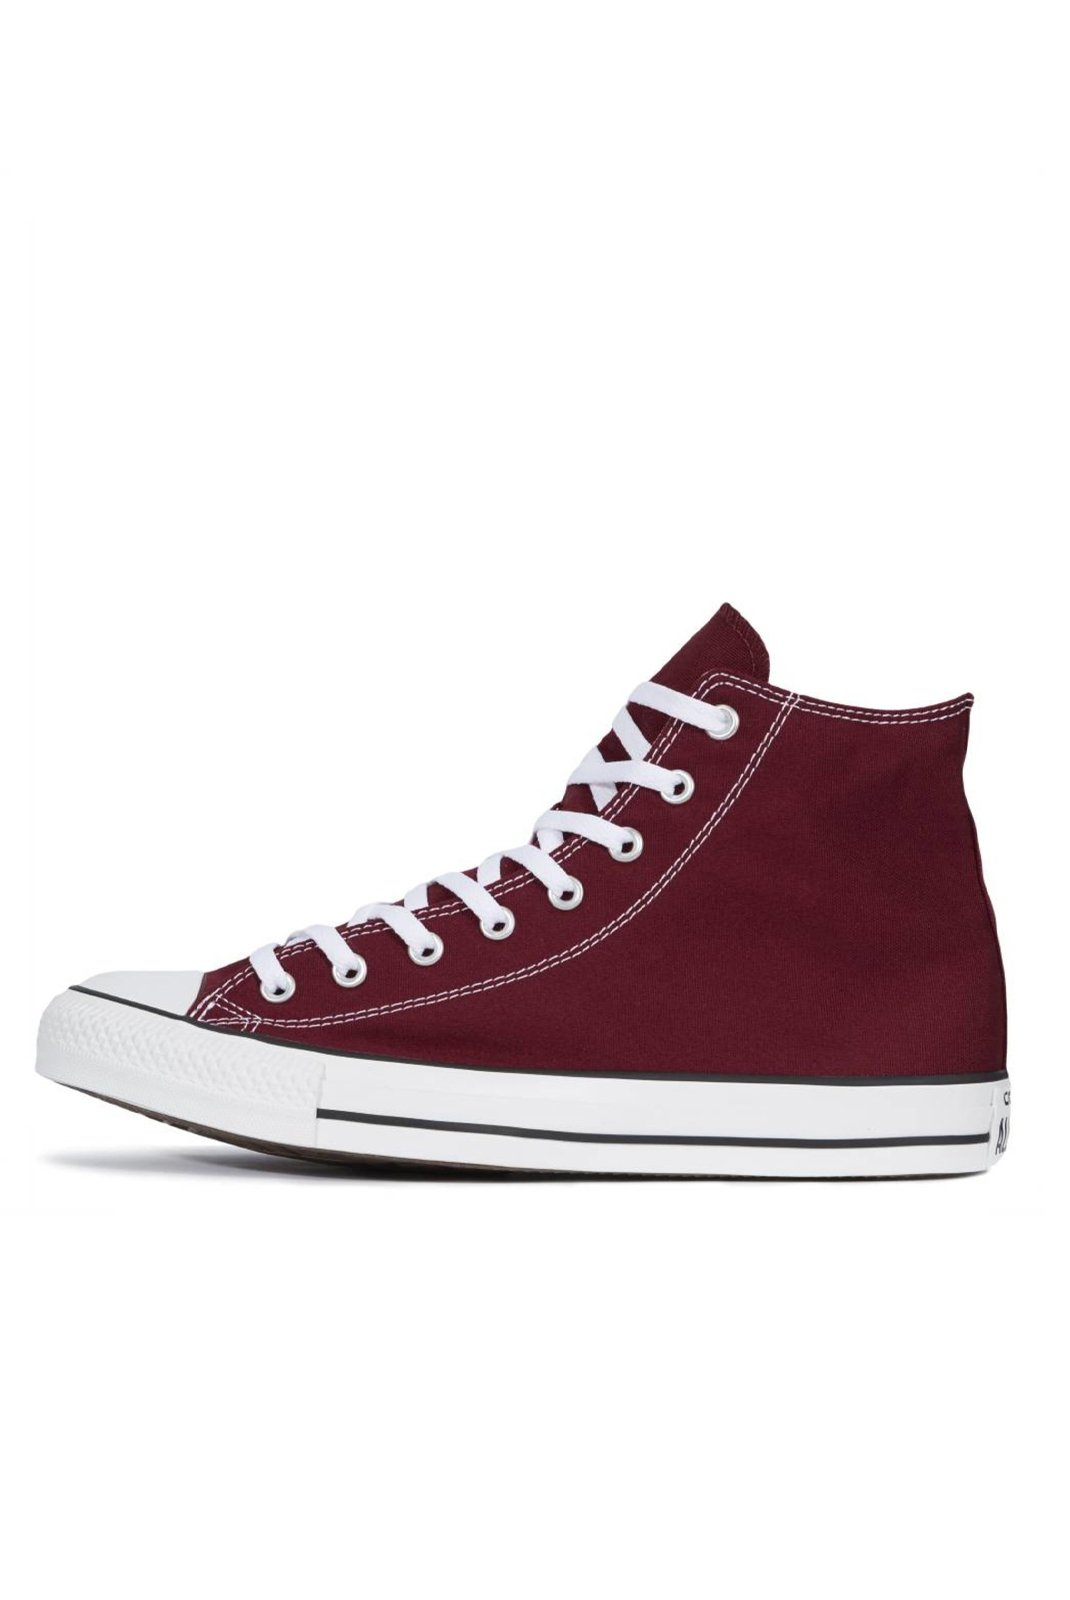 Baskets / Sport  Converse M9613 Marron bordeaux